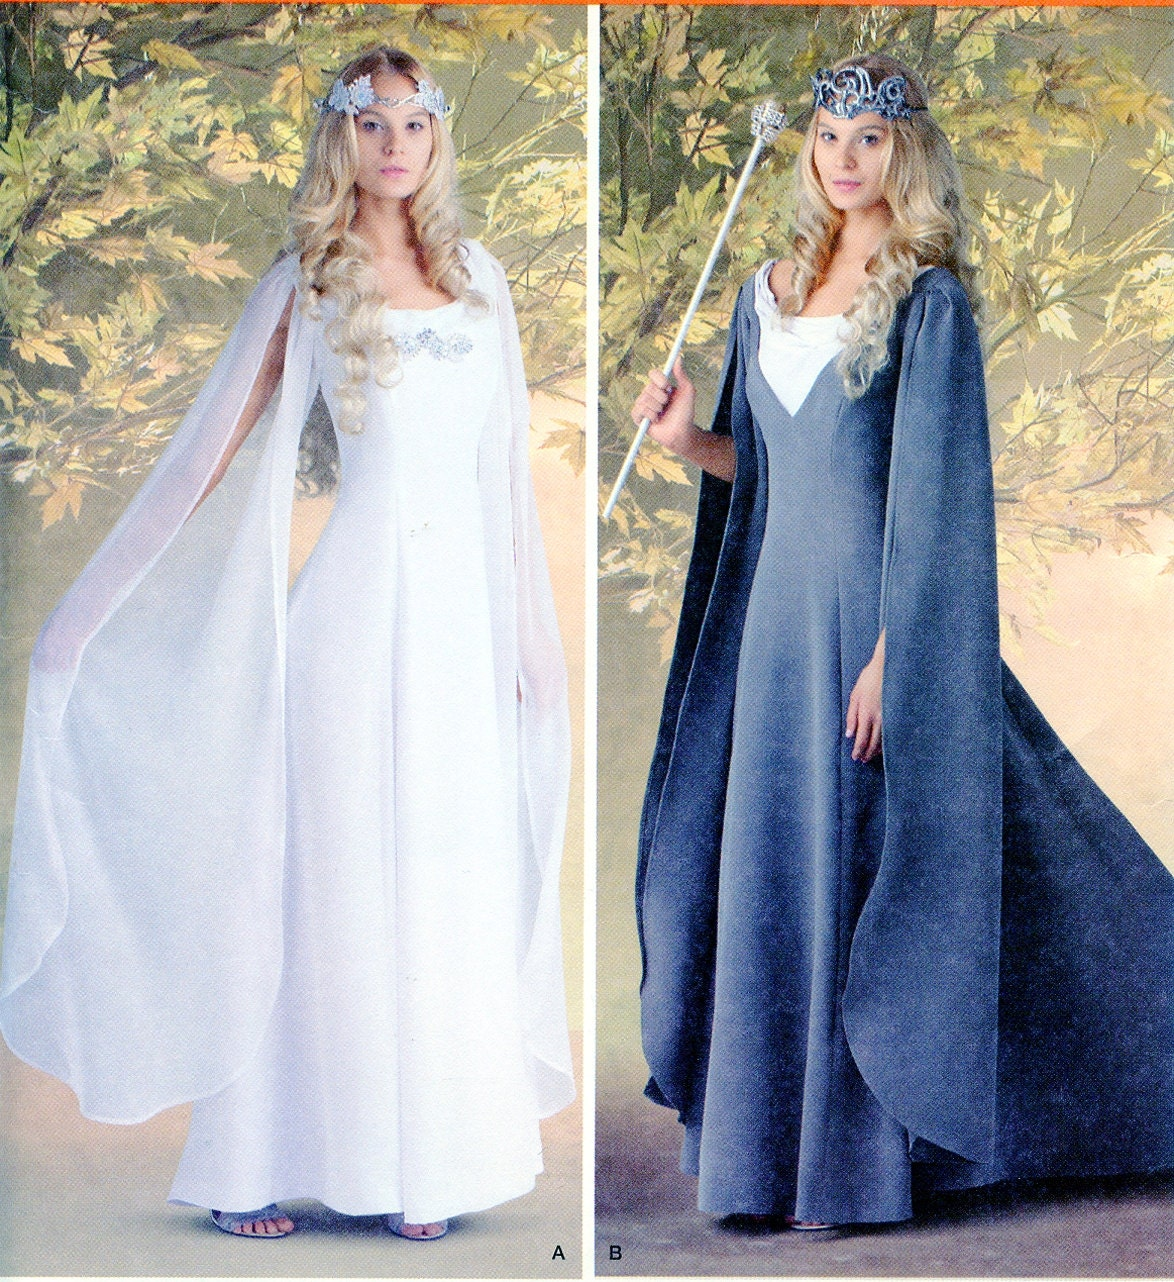 cosplay lord of the rings style galadriel wizard of oz style